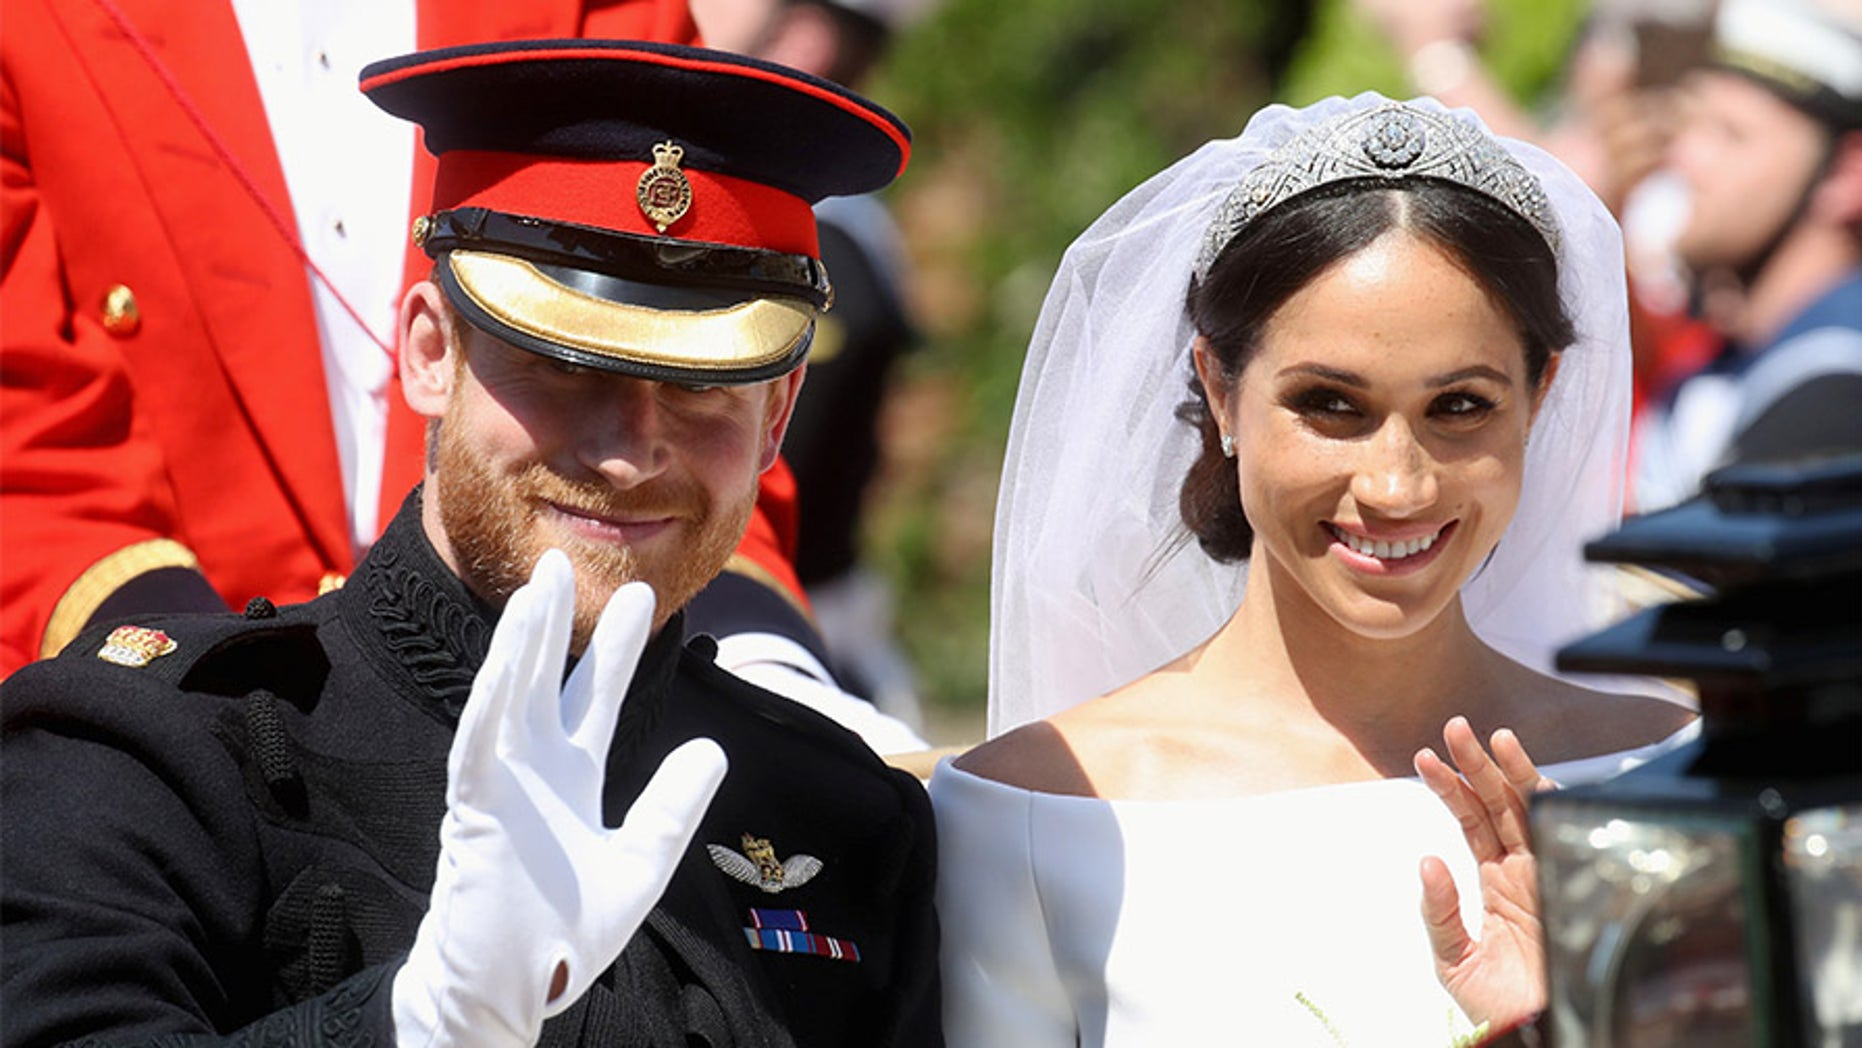 Meghan Markle married Prince Harry at an extravagant Windsor Castle wedding in May.